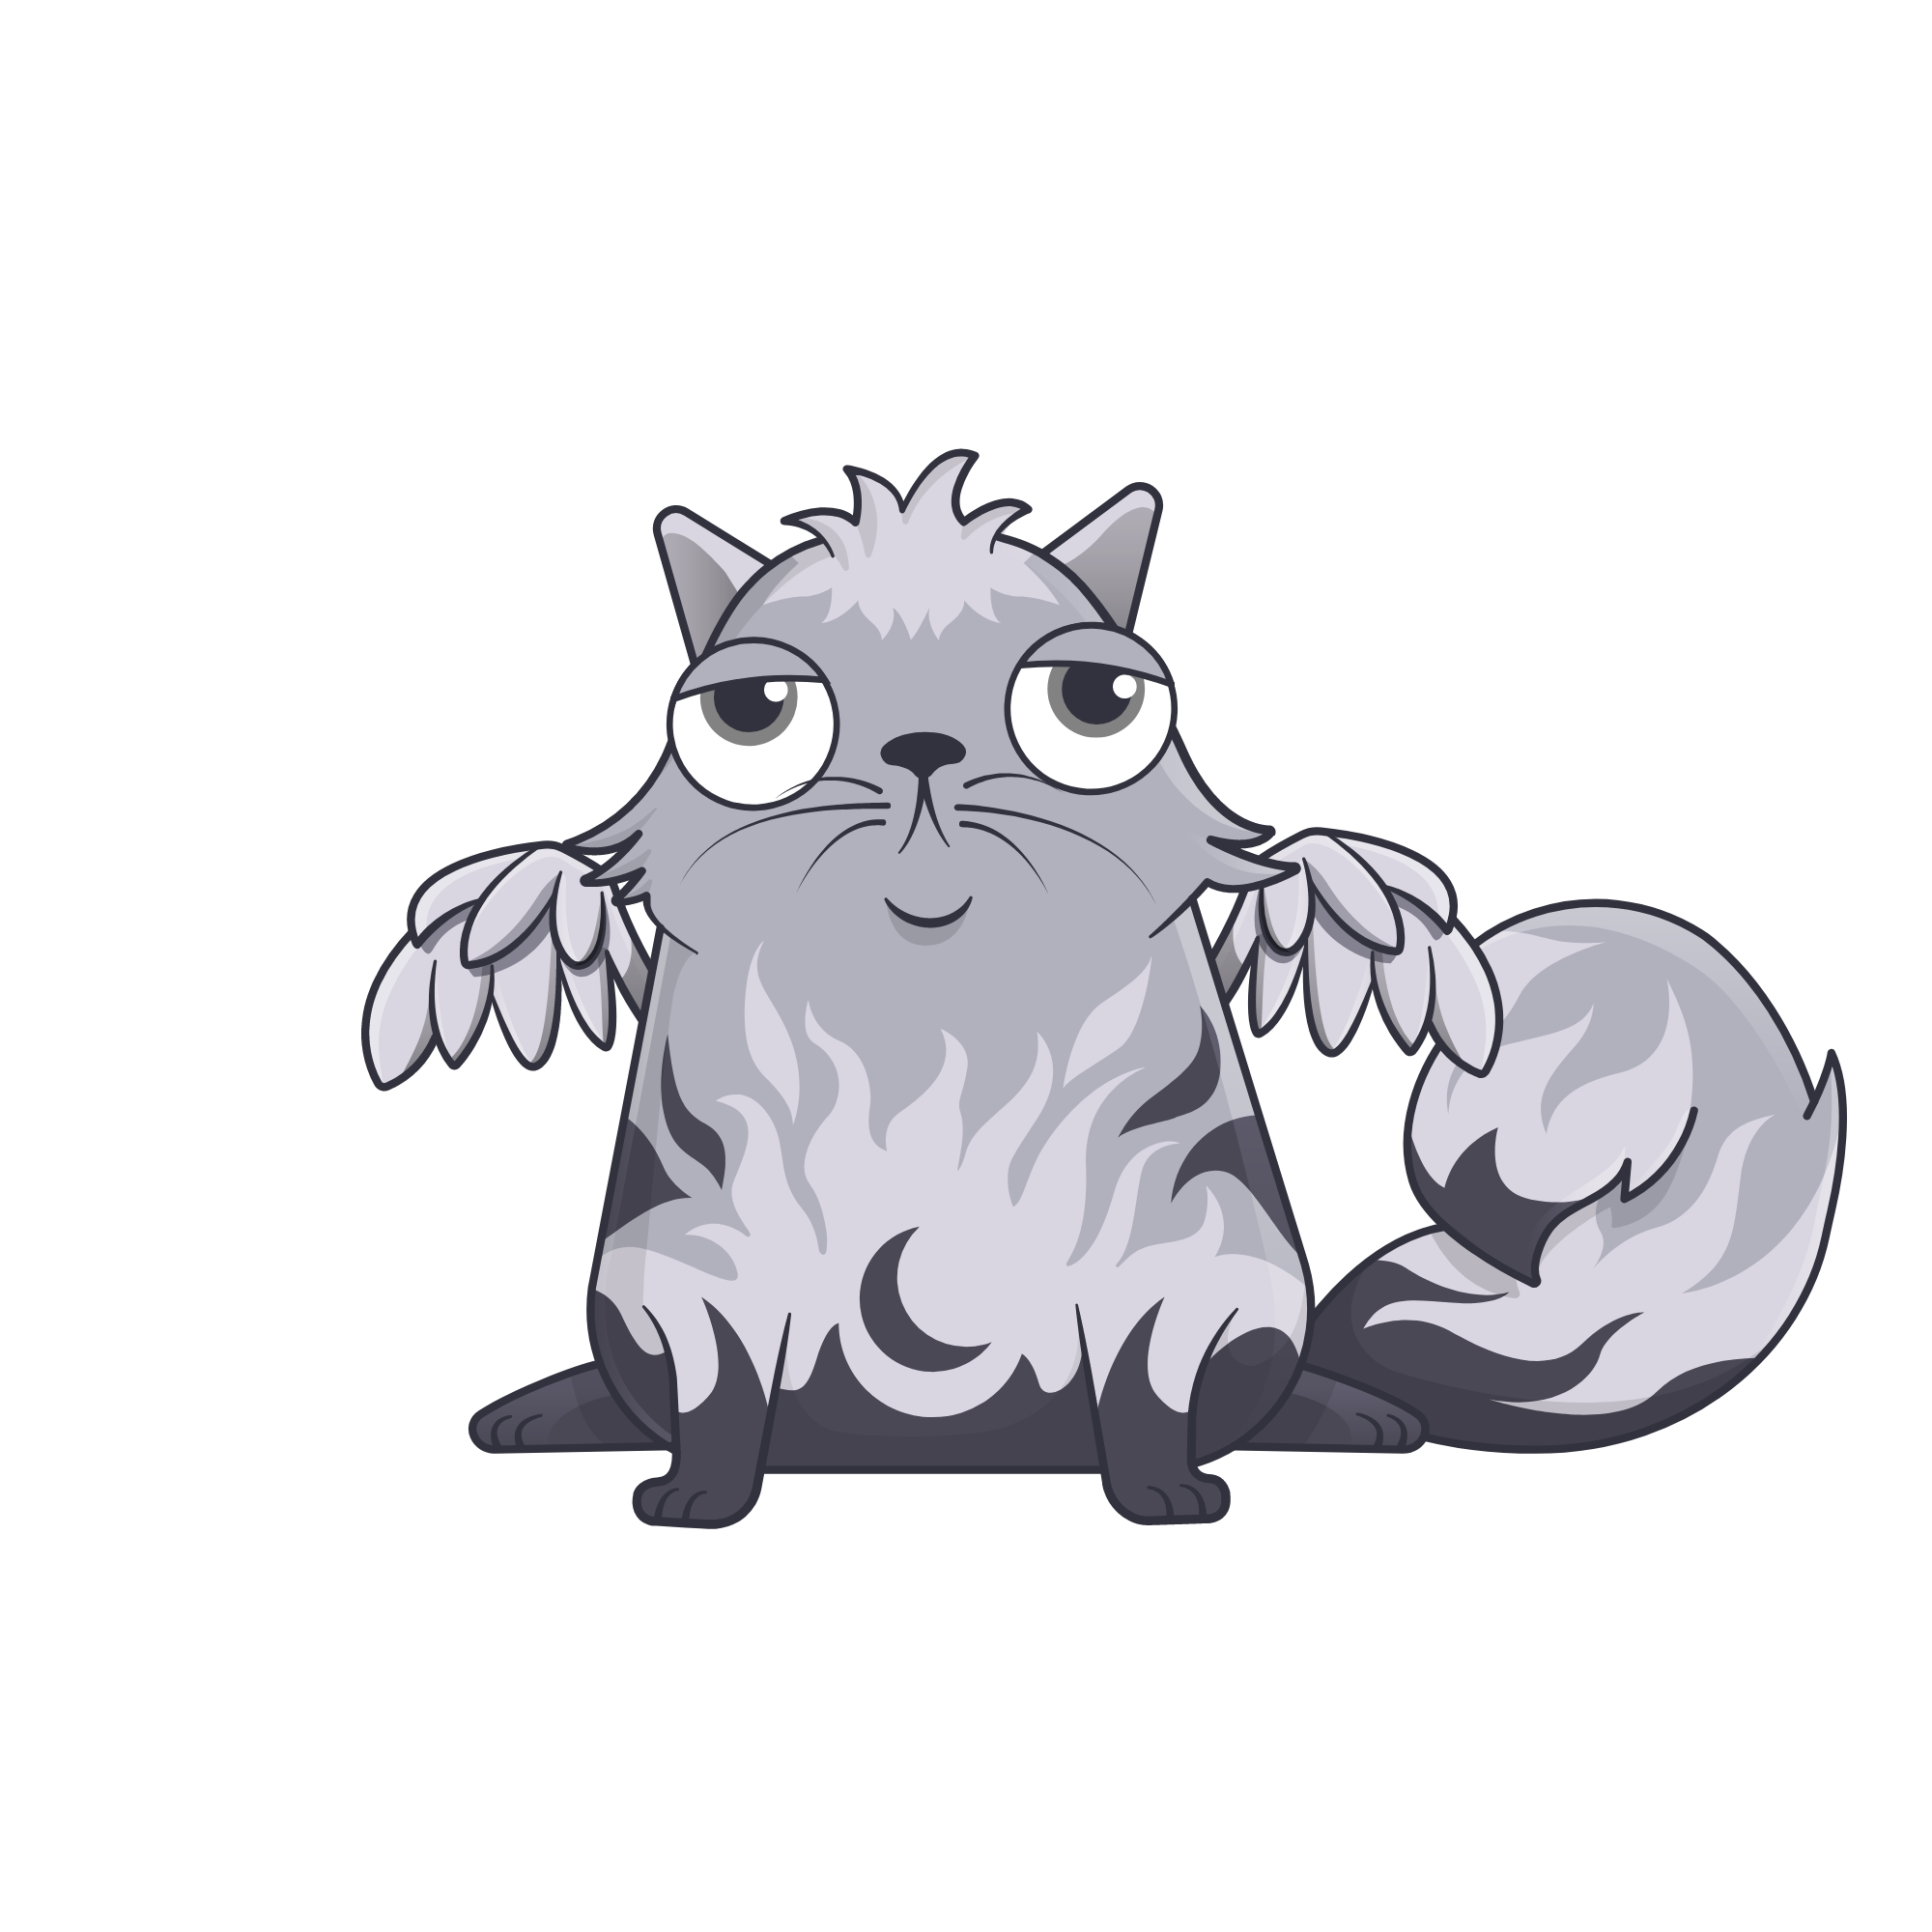 cryptokitty #1839221